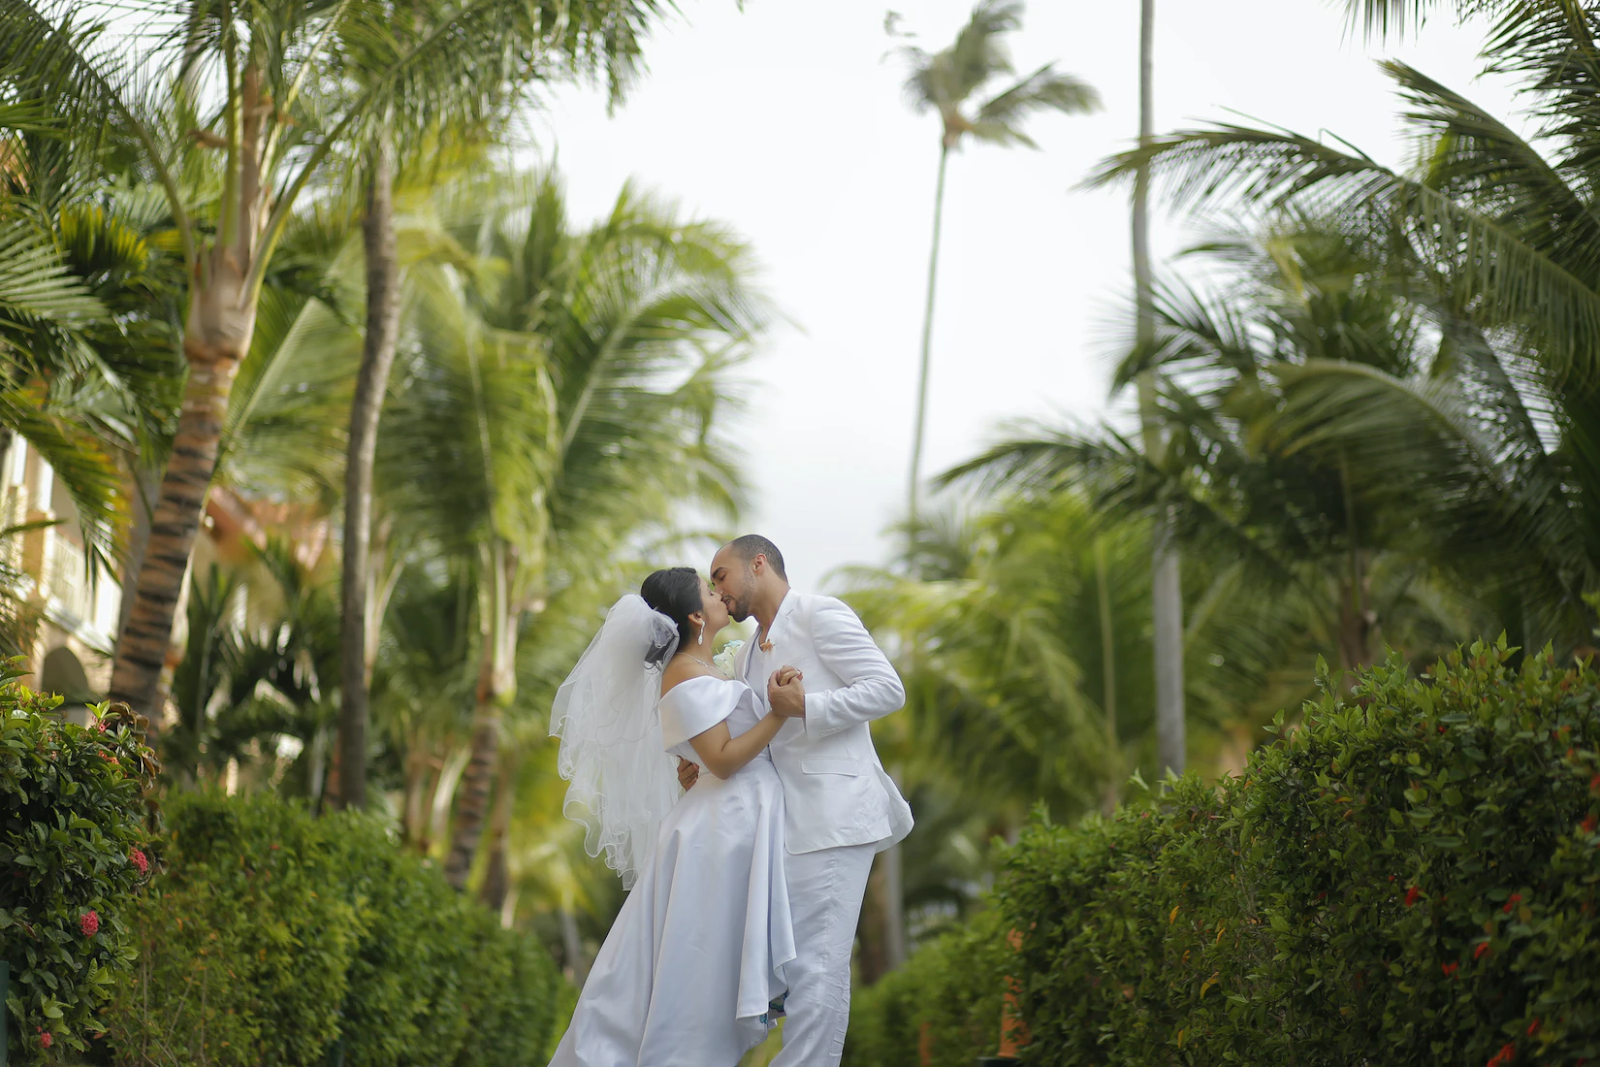 5 Tips For Your Dream Destination Wedding